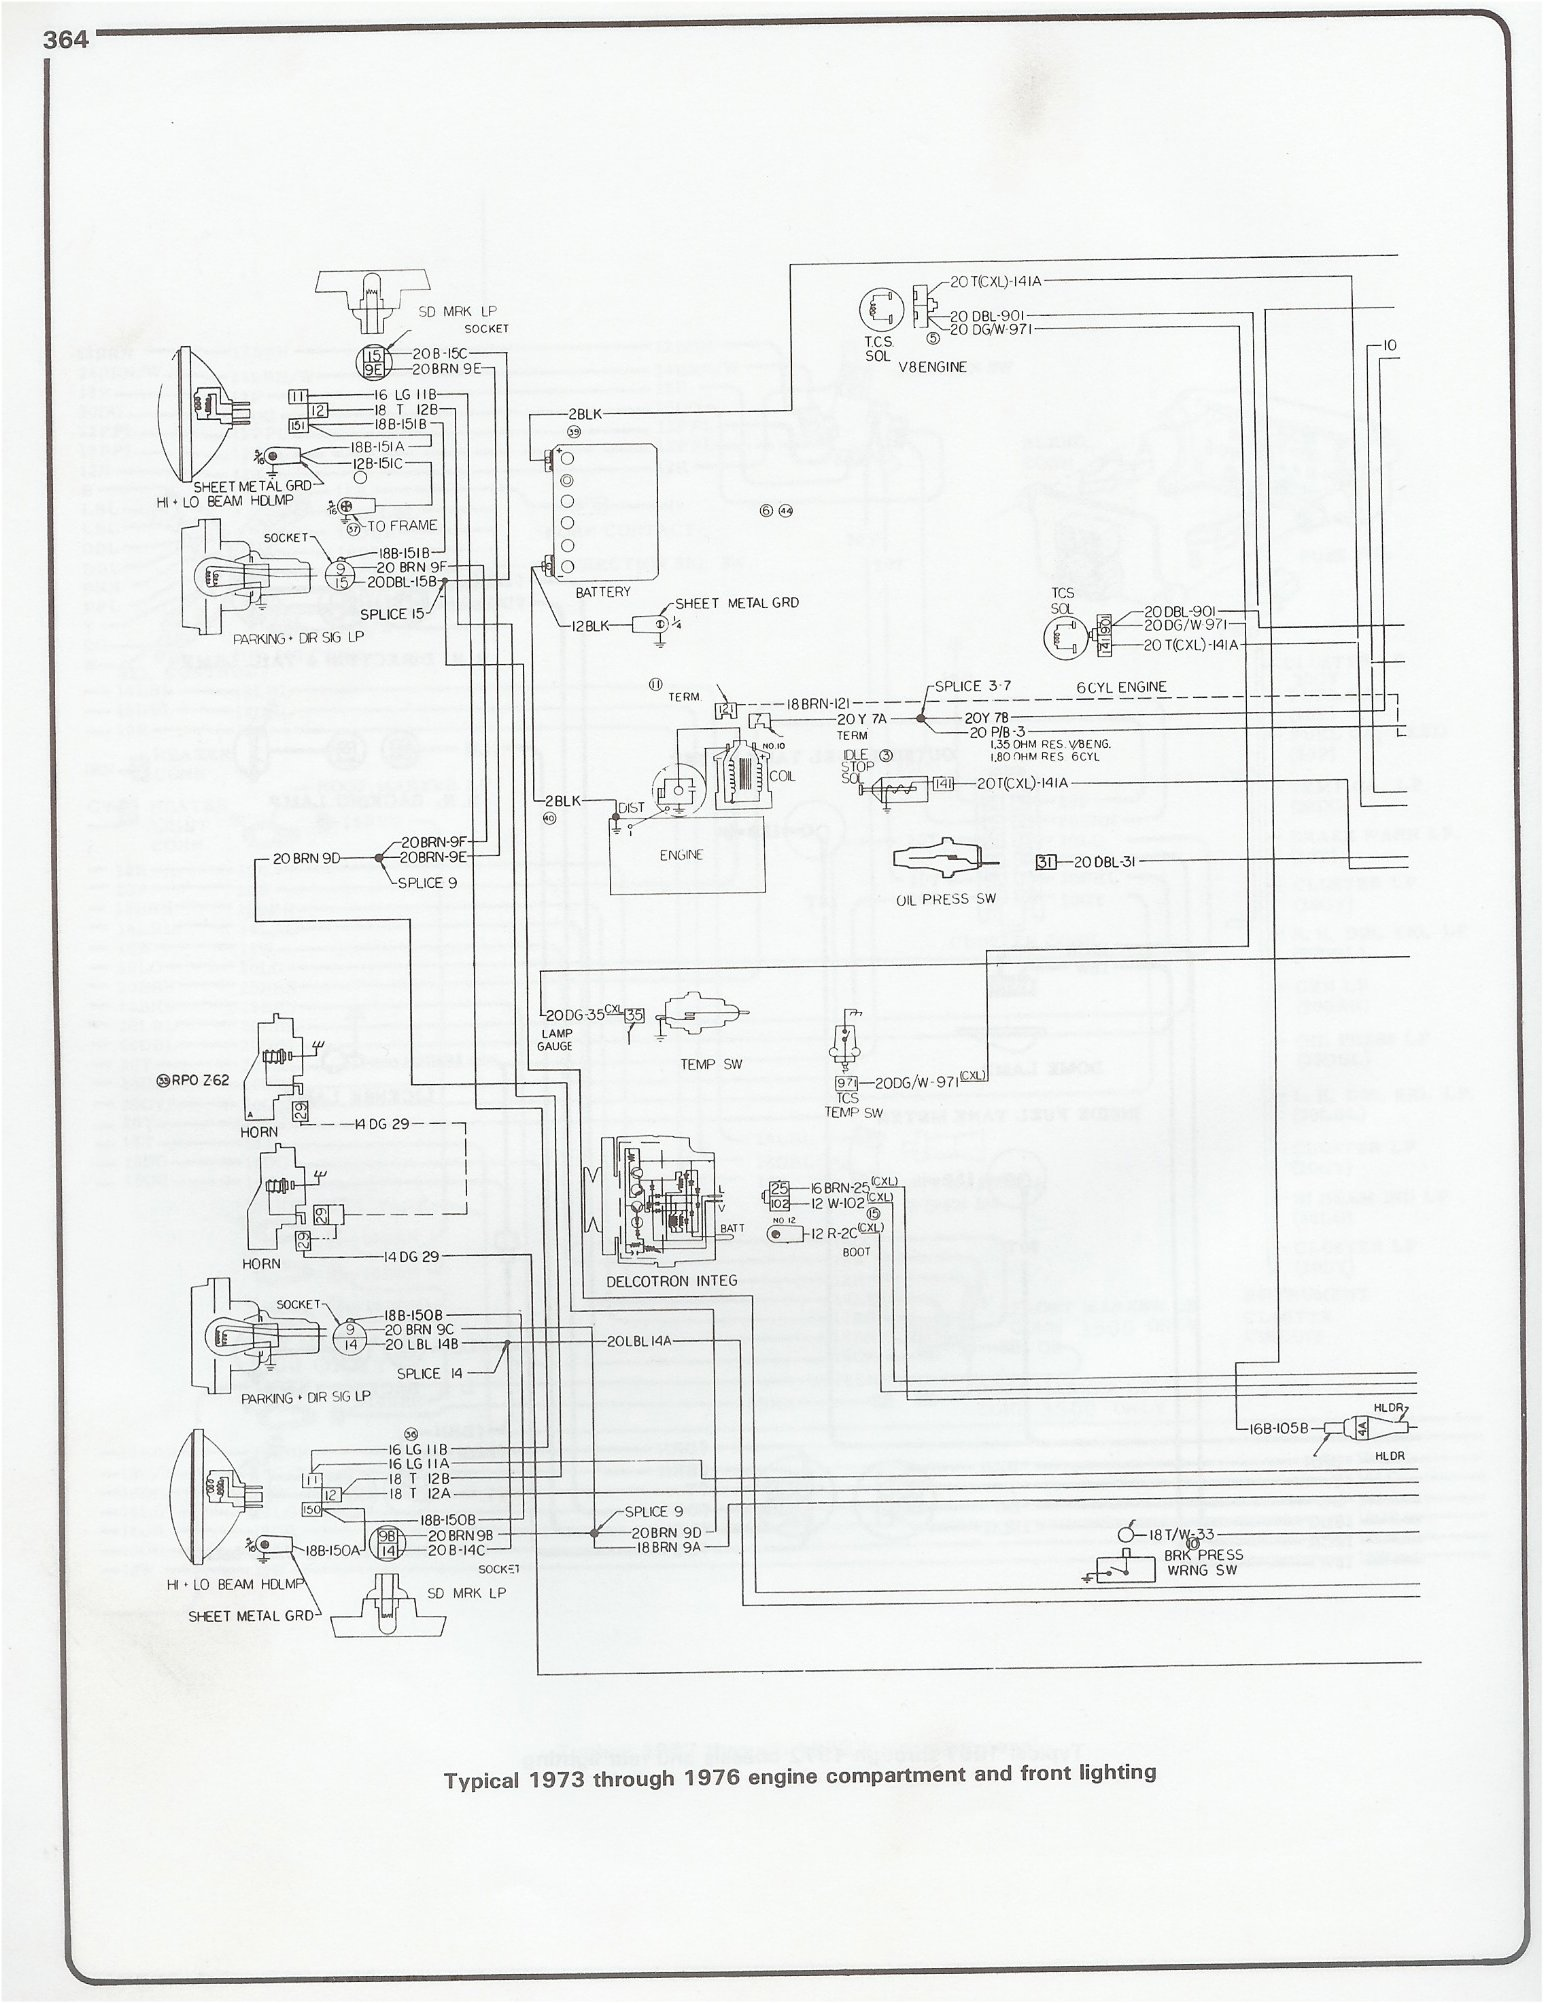 Eng Frt Light on 1980 Mustang Wiring Diagram